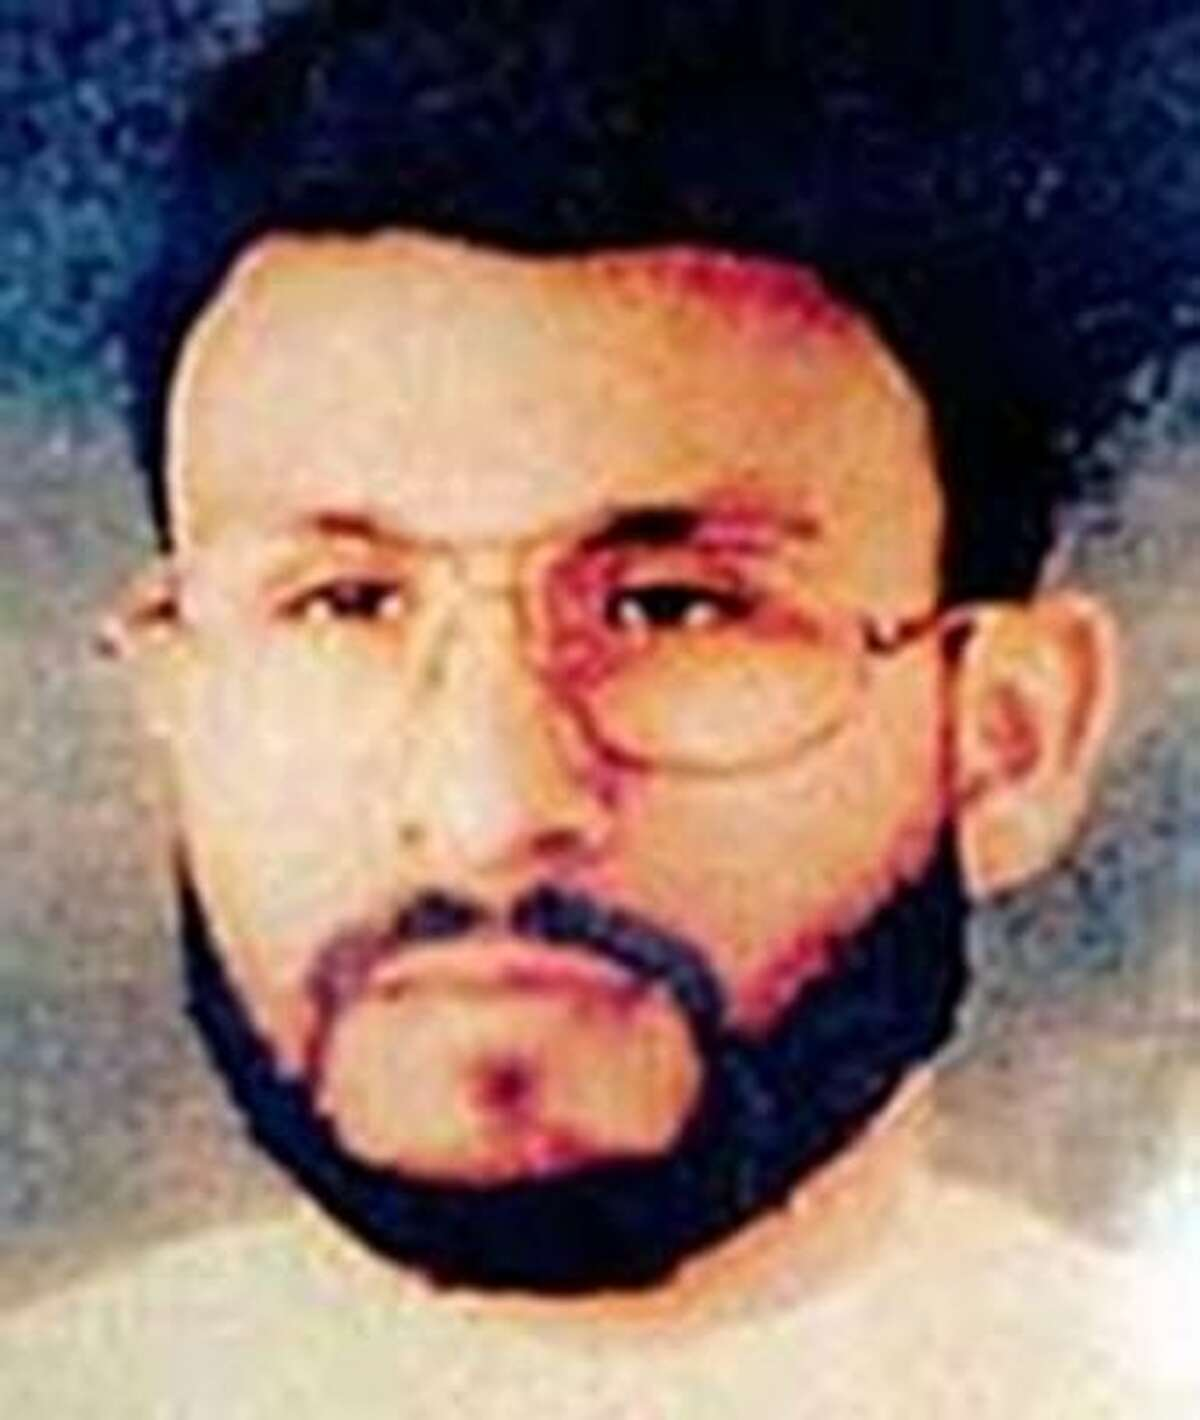 FILE - This undated file photo provided by U.S. Central Command, shows Abu Zubaydah, date and location unknown. Zubaydah was the CIAís guinea pig. He was the first high-profile al Qaida terror suspect captured after the Sept. 11 attacks and the first to vanish into the spy agencyís secret prisons, the first subjected to grinding white noise and sleep deprivation tactics and the first to gasp under the simulated drowning of waterboarding. Zubaydahís stark ordeal became the CIAís blueprint for the brutal treatment of terror suspects, according to the Senate Intelligence Committeeís report released Tuesday. (AP Photo/U.S. Central Command, File)